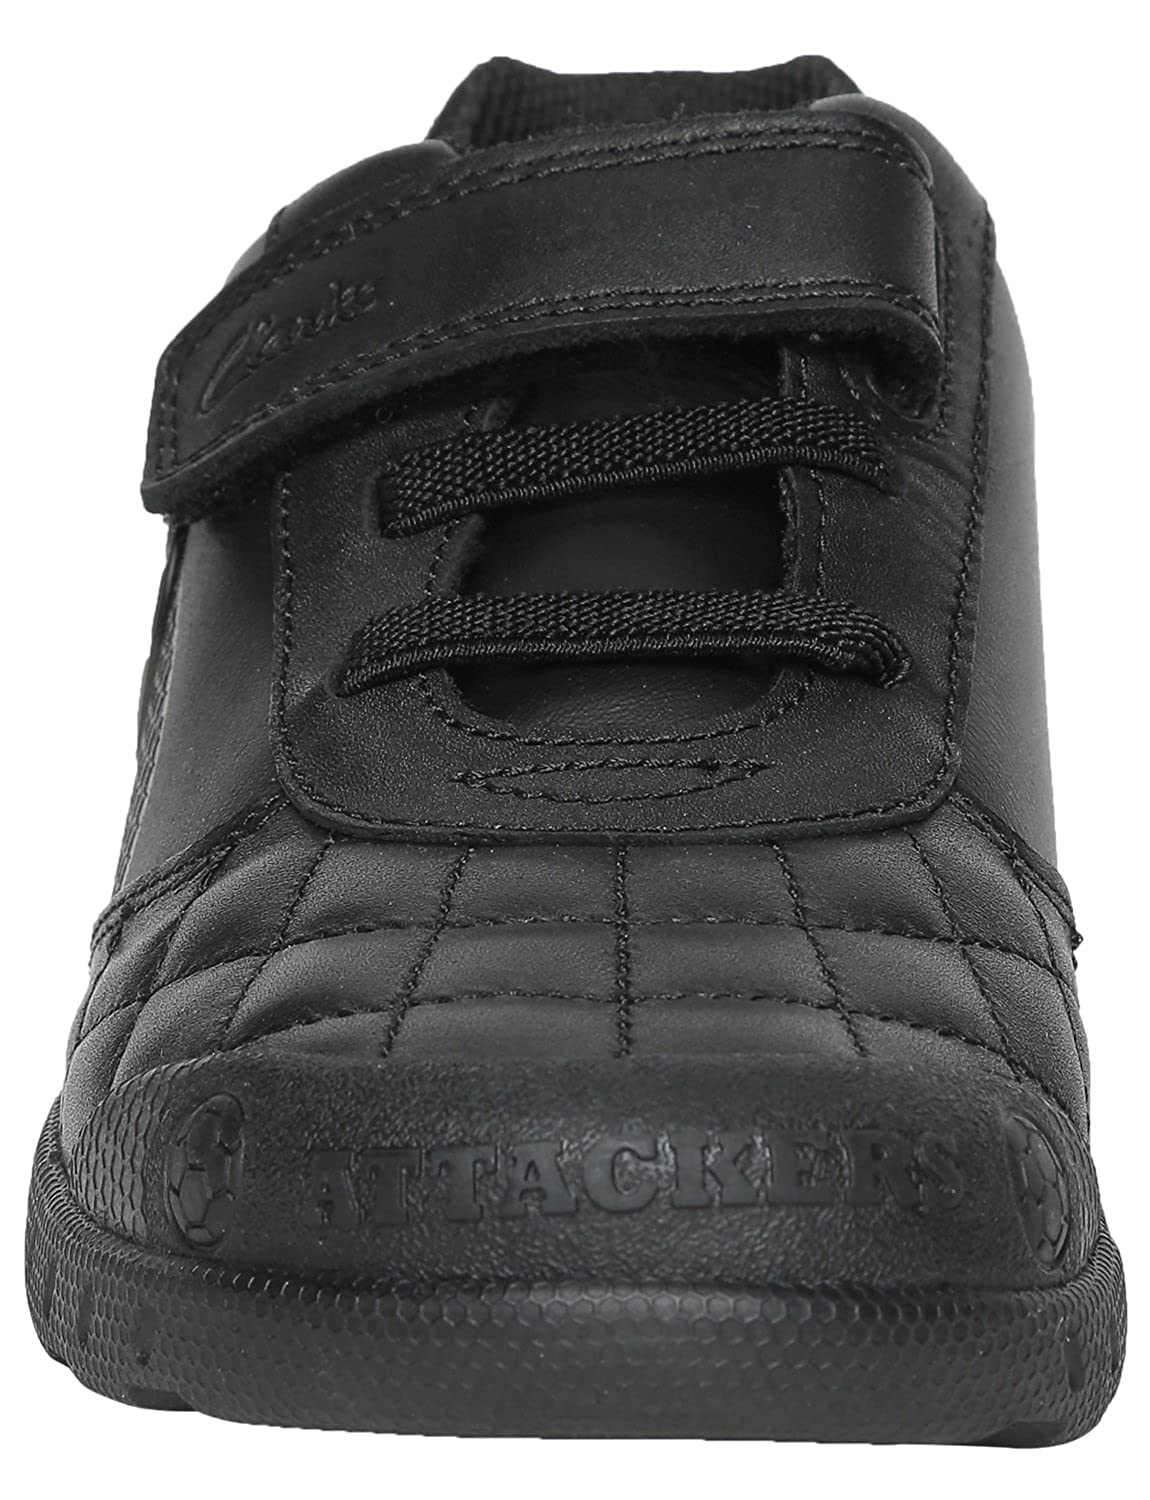 606856be1ef1 Clarks Boys Football Design School Shoes Leader Game - Black Leather - UK  Size 1H - EU Size 33 - US Size 1.5XW  Amazon.co.uk  Shoes   Bags